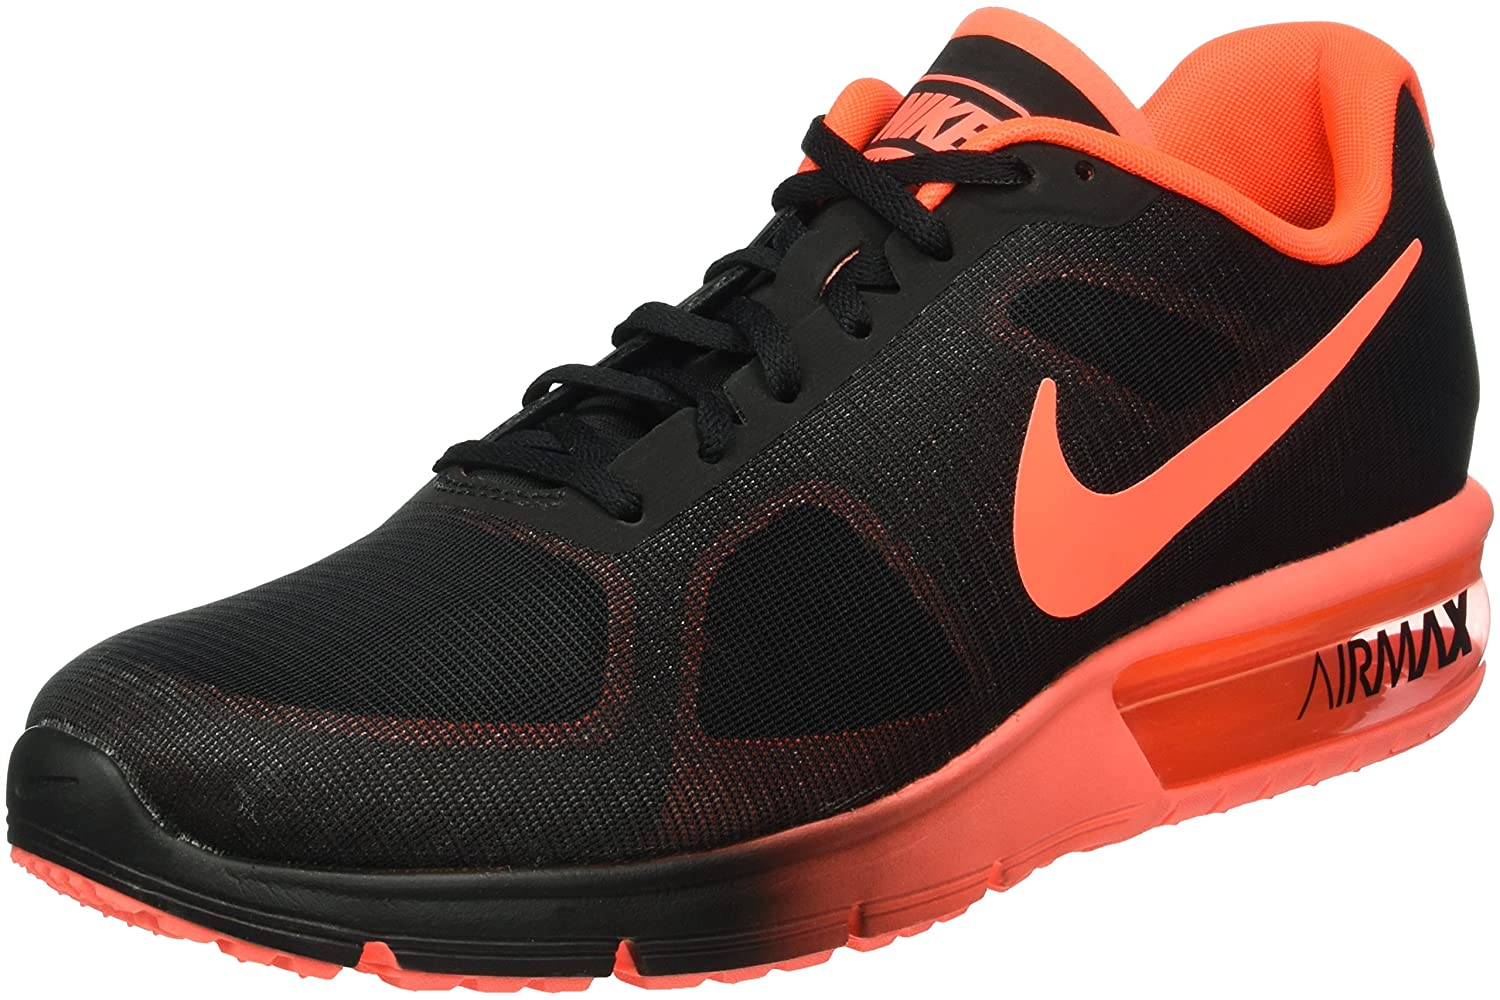 NIKE Men's Air Max Sequent 2 Running Shoe B01I2OI1F6 8 D(M) US|Black Total Crimson